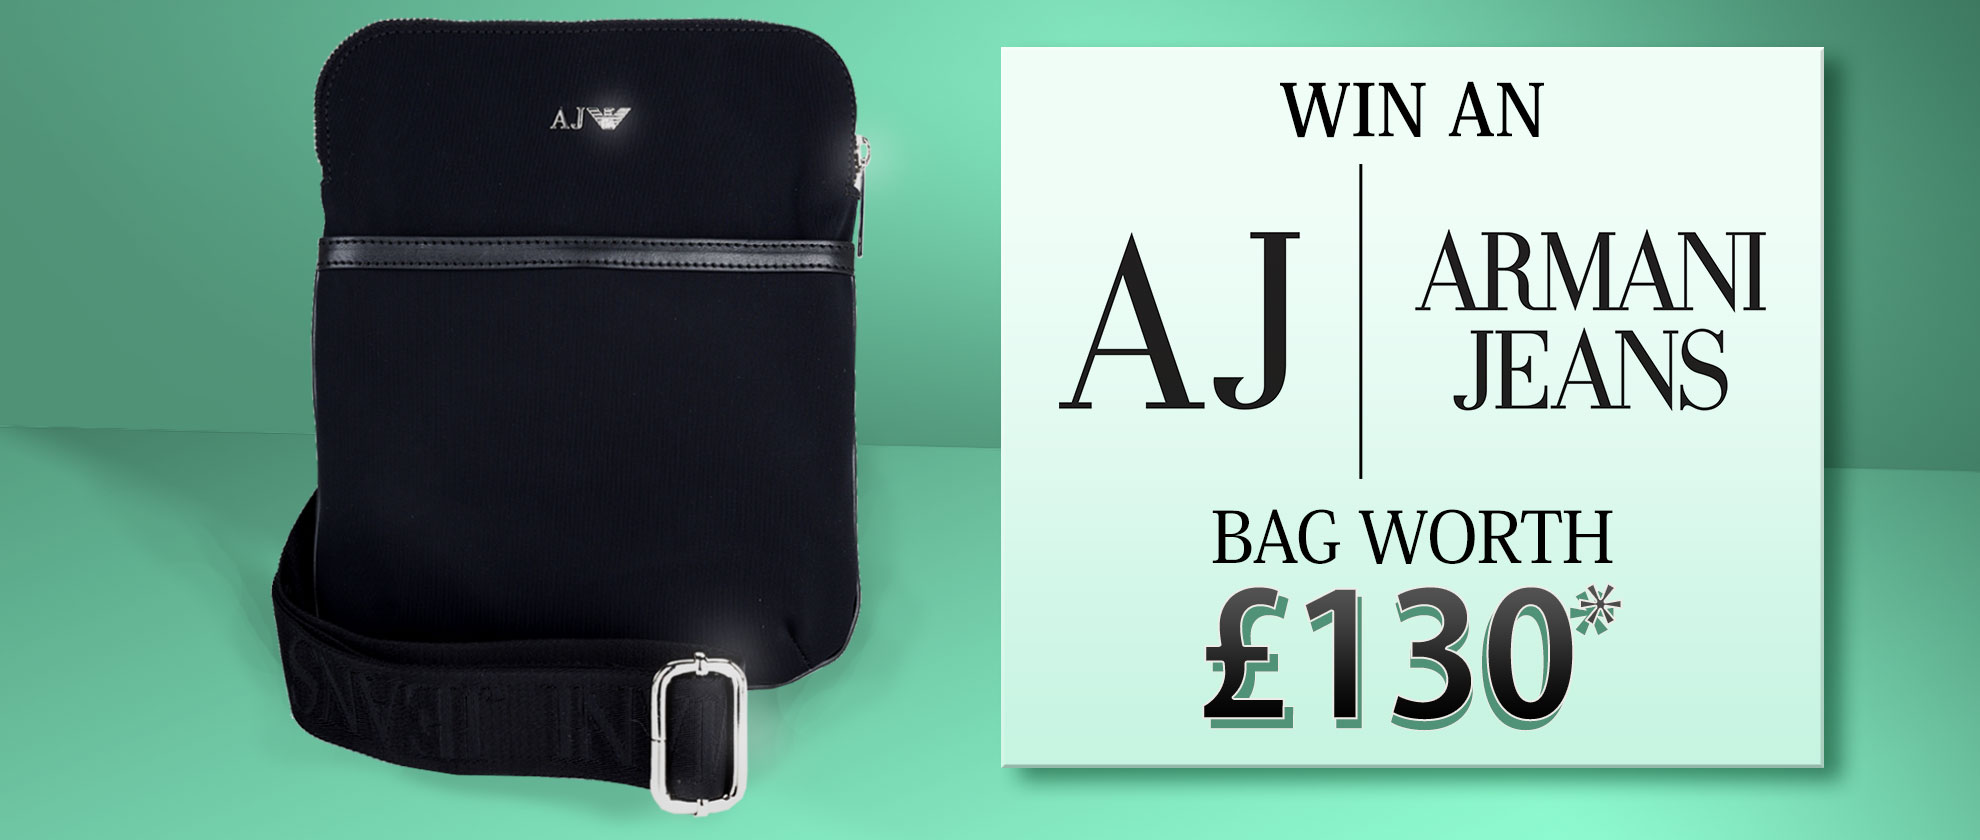 Win an Armani Jeans Bag Worth £130!